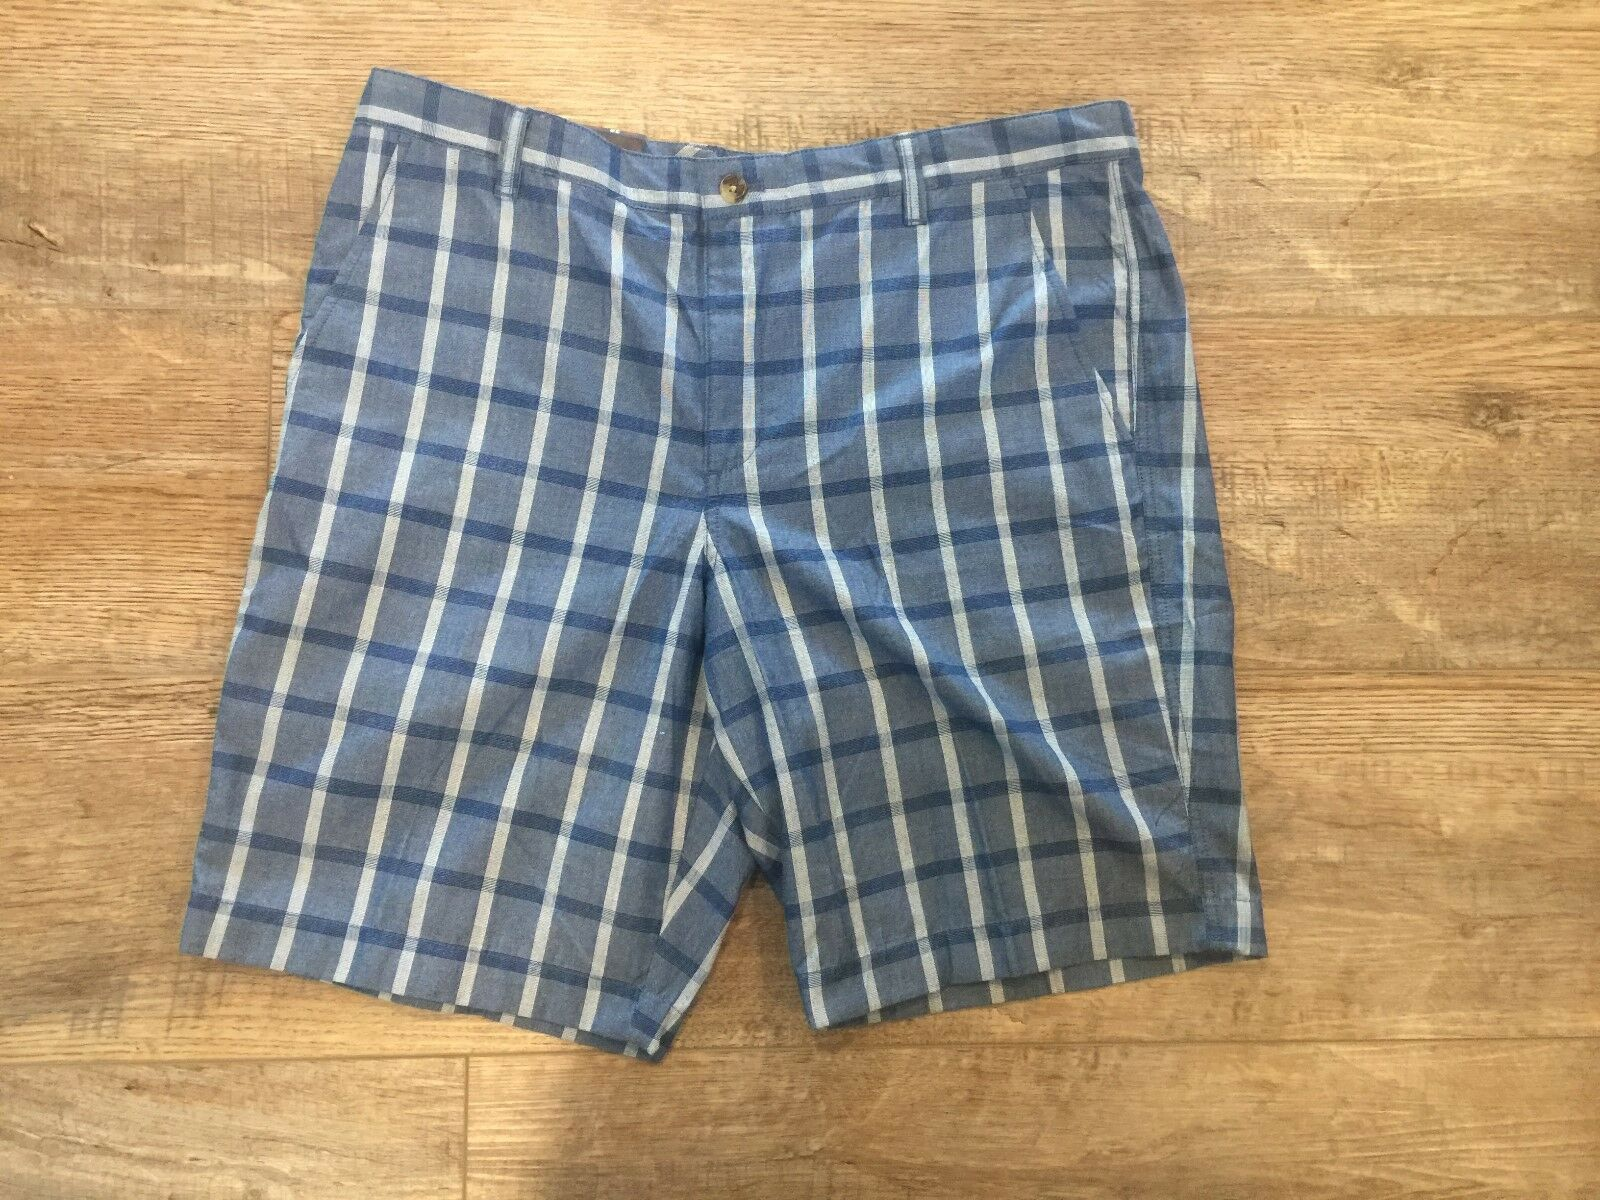 NWT CHAPS bluee Plaid Bermuda Shorts Size 38 X 10